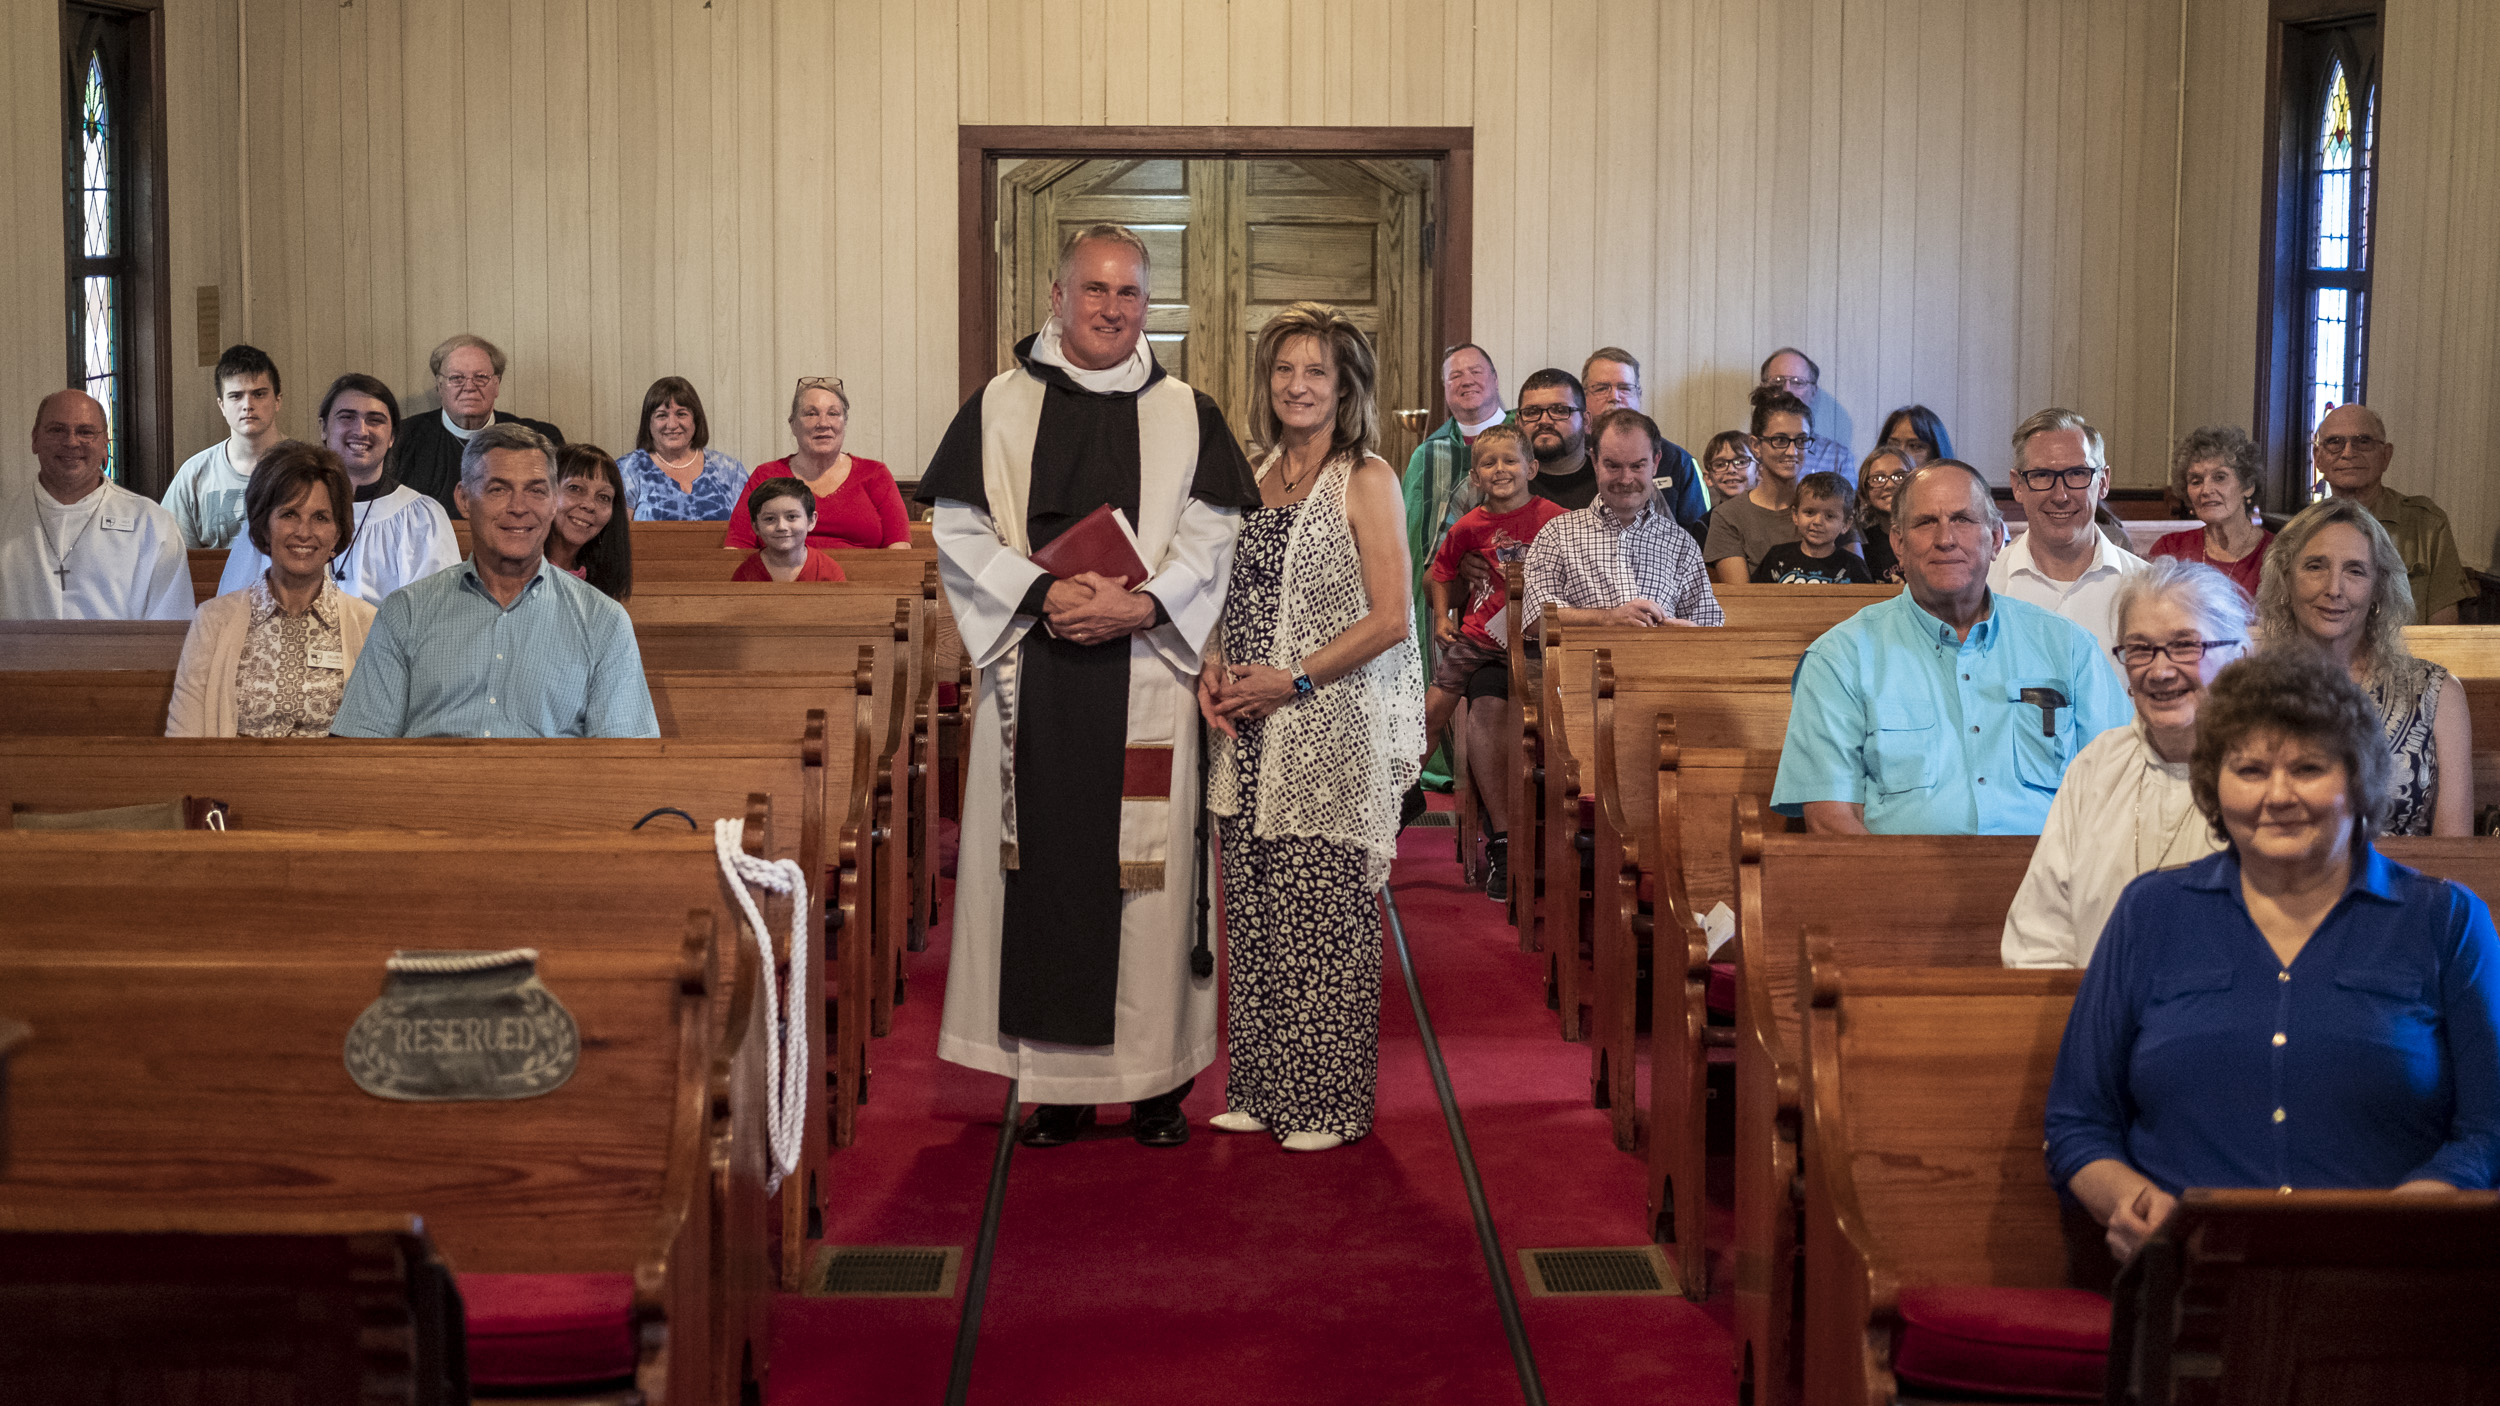 The installation of the Rev. James Harris as Priest in Charge of All Saints' Episcopal Church, West Plains